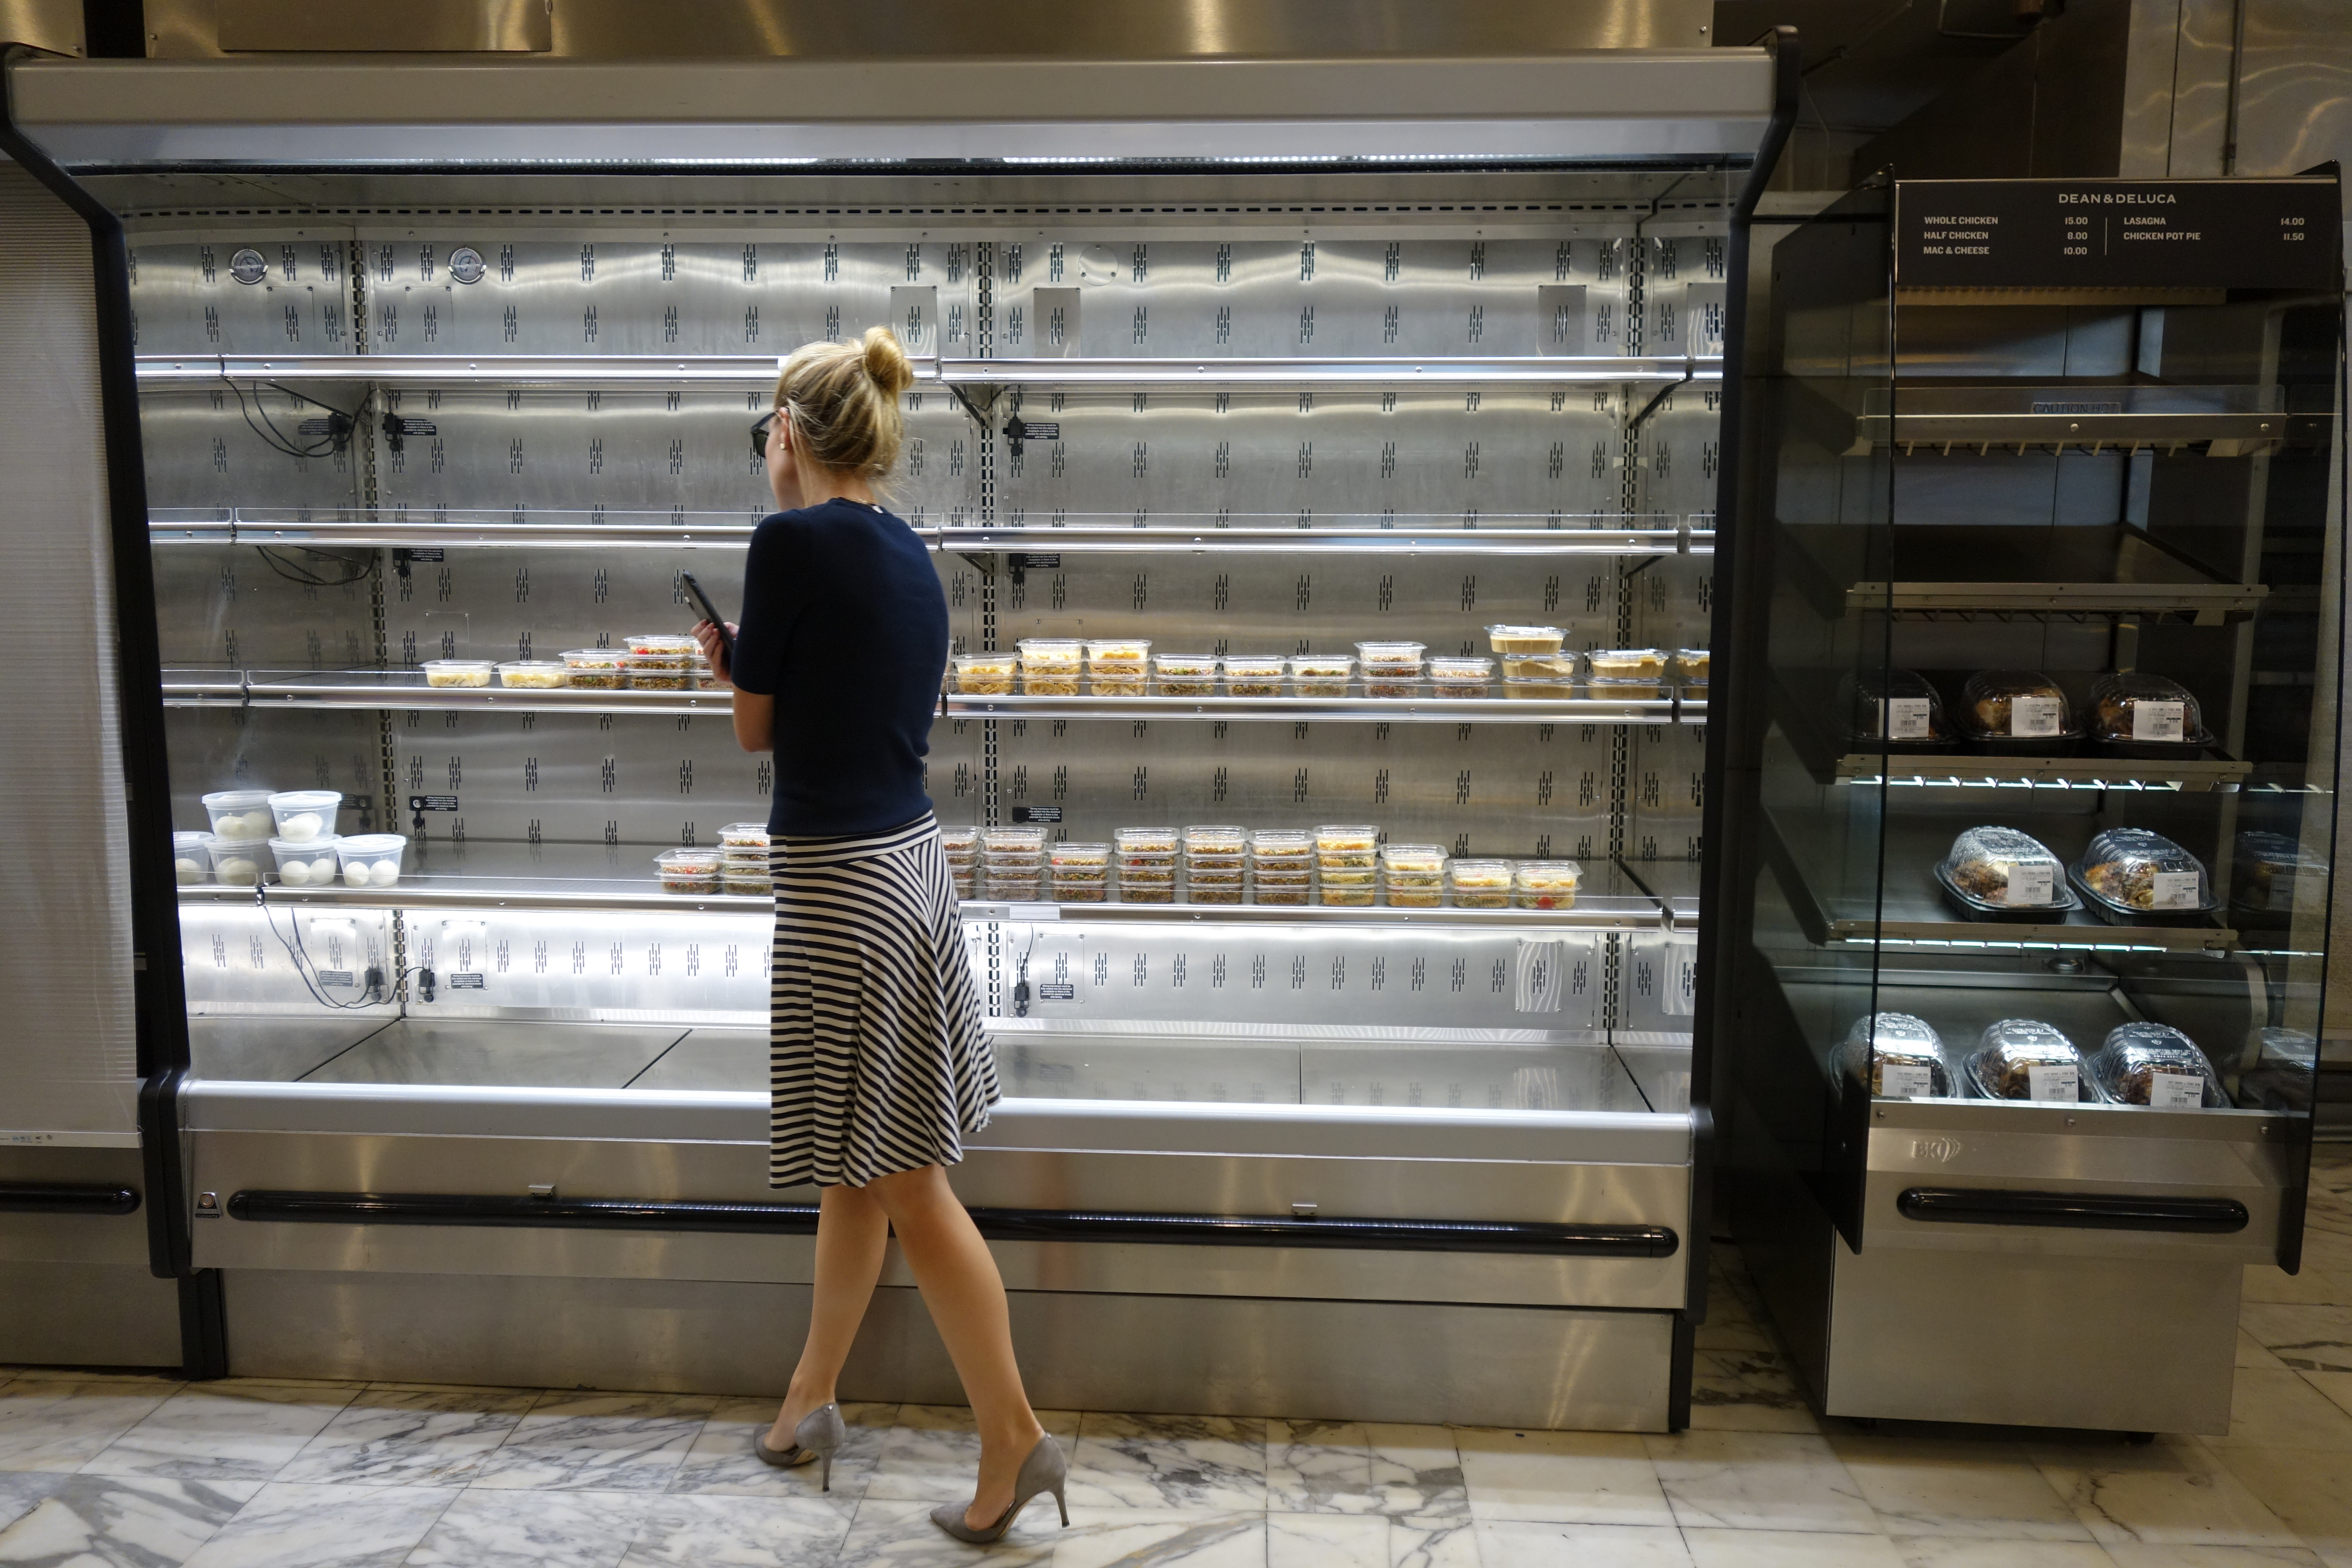 A customer stares at nearly empty shelves where a few to-go foods are available